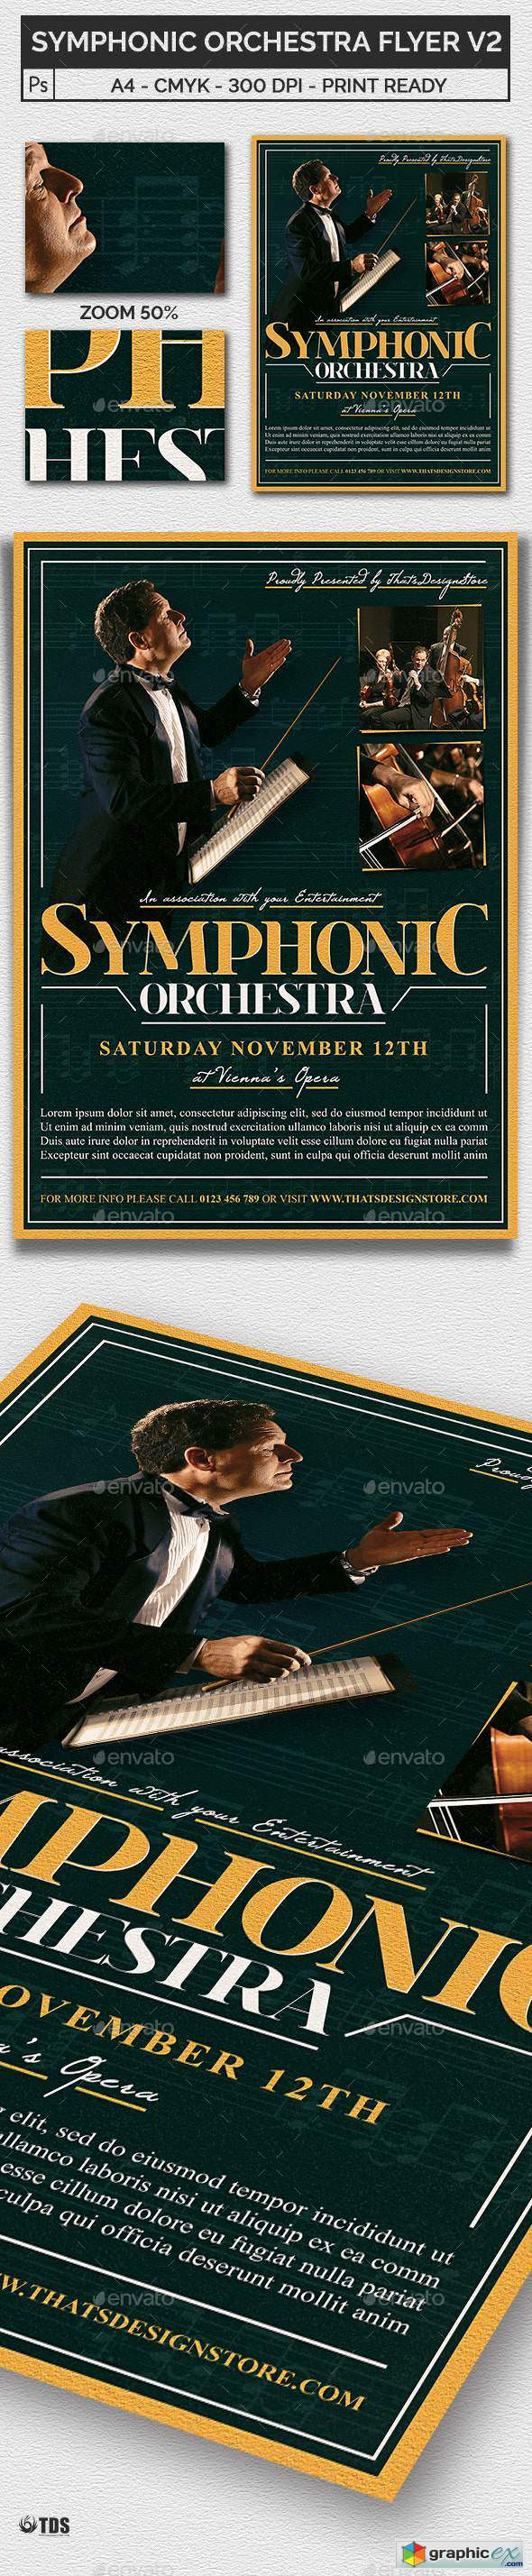 Symphonic Orchestra Flyer Template V2 by lou606